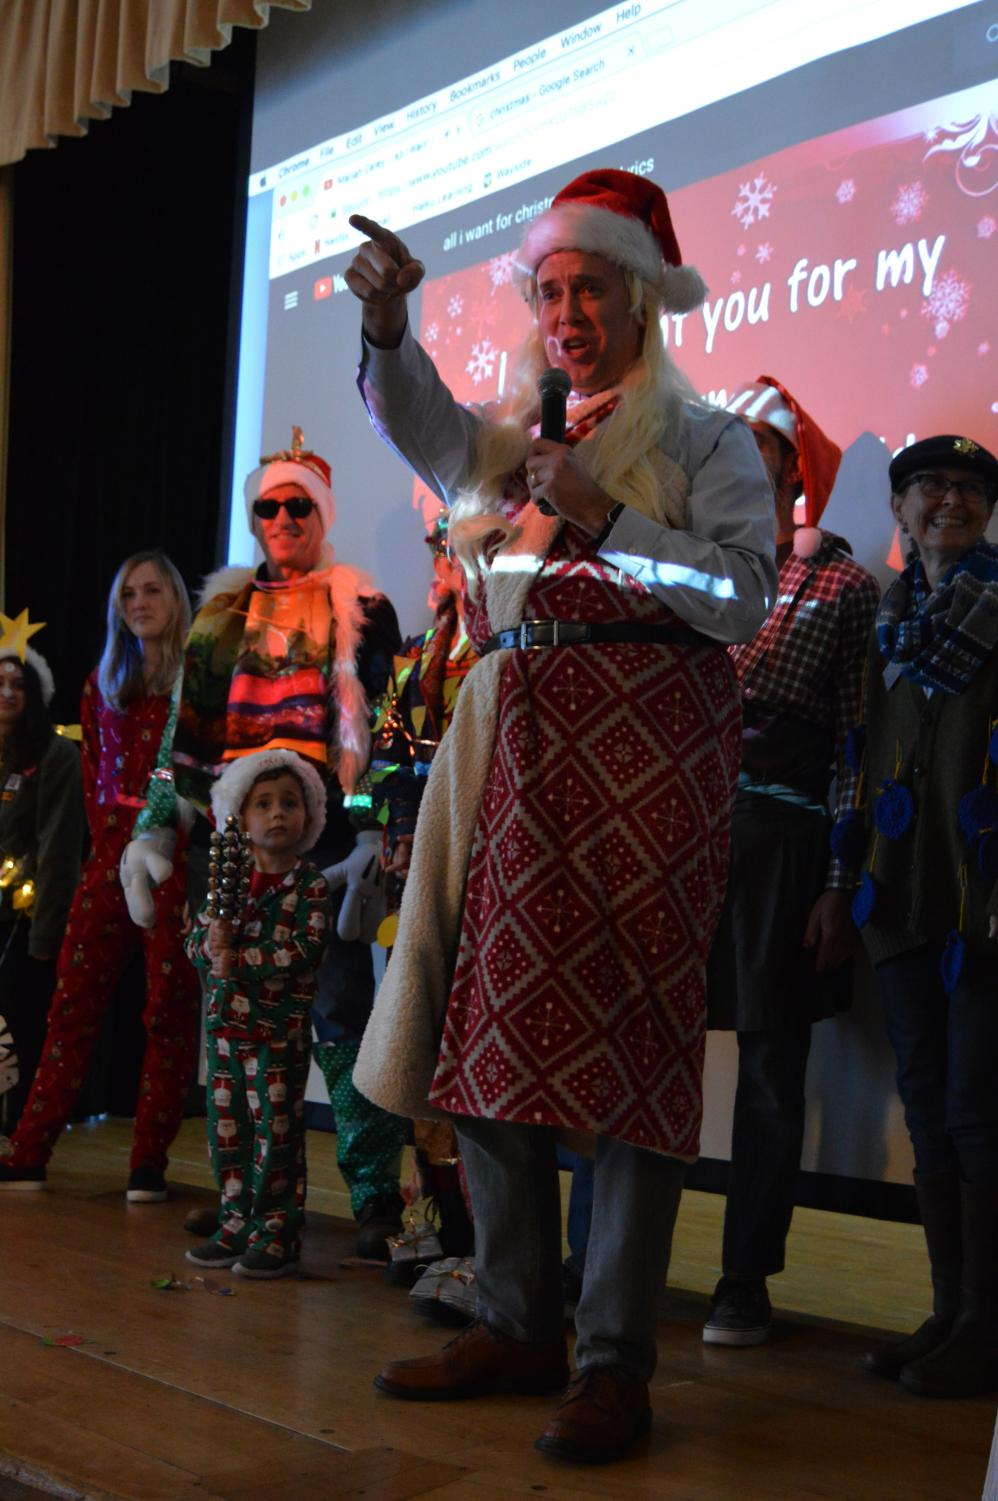 History teacher Michael Stafford lip-syncs during the advisor costume contest. Stafford, along with numerous other advisors, were dressed up by their advisees as Christmas-related figures as a part of the four-hour holiday celebration.